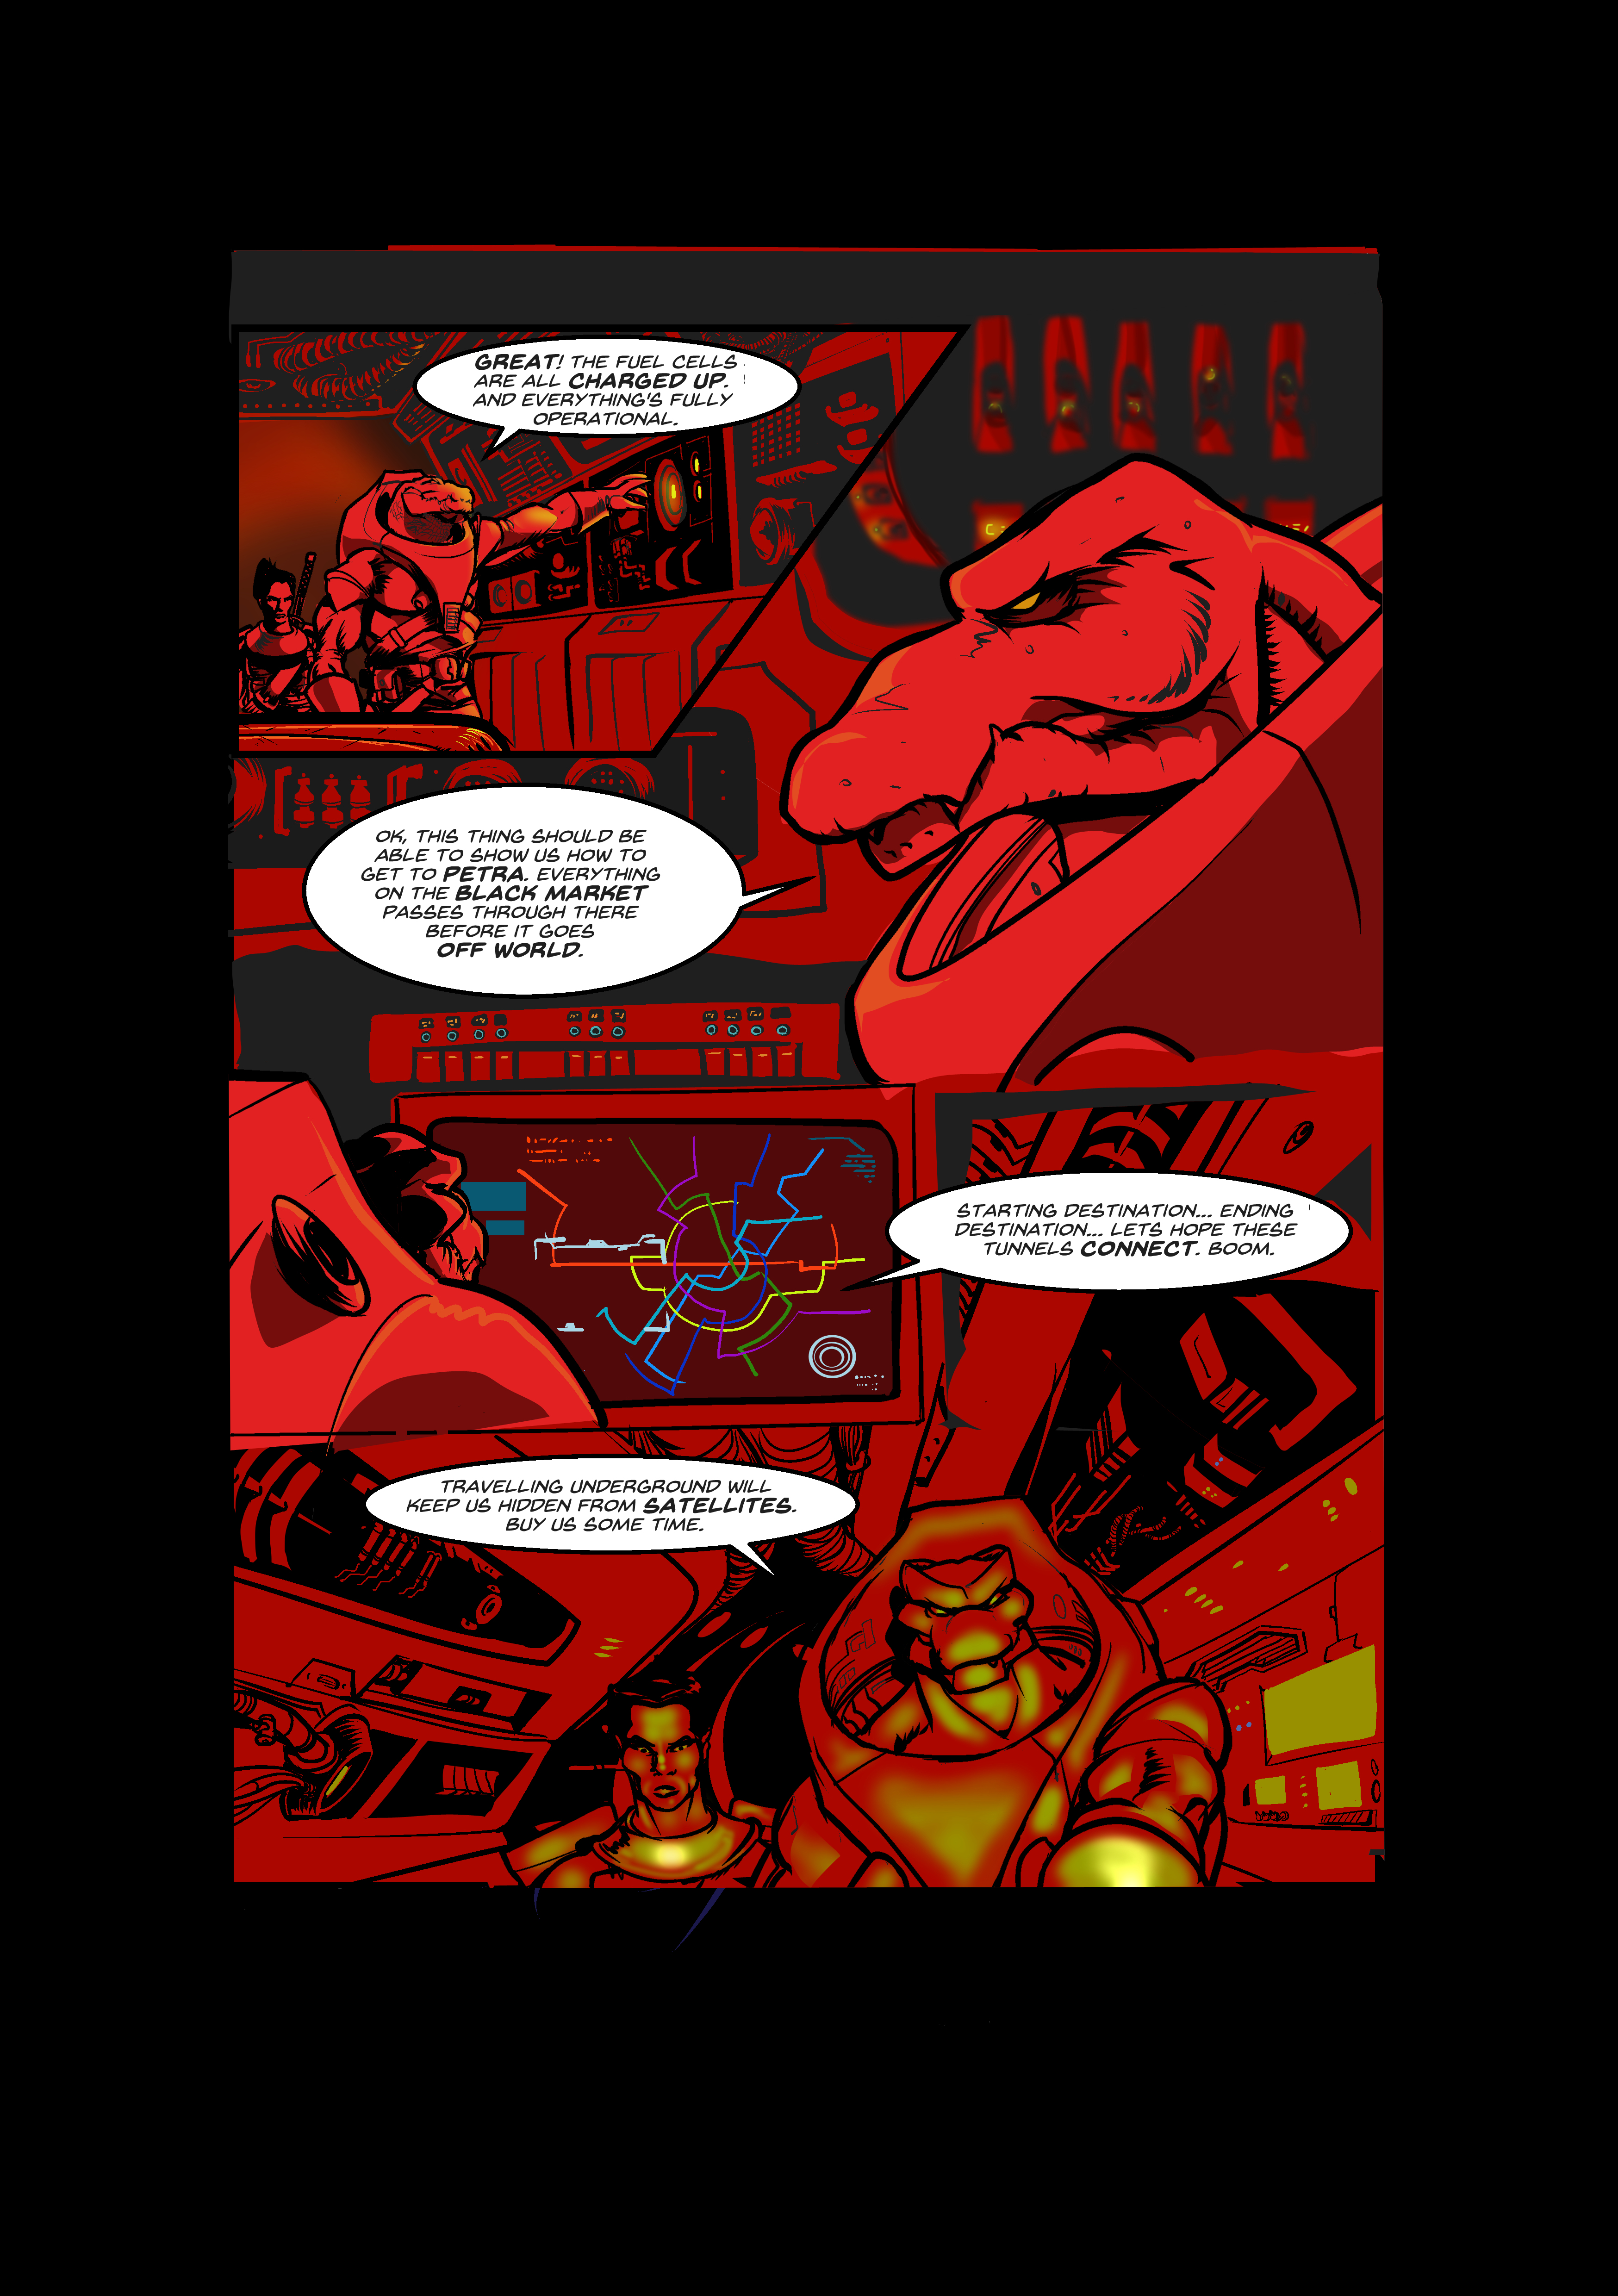 prince of the astral kingdom ch2 pg 55